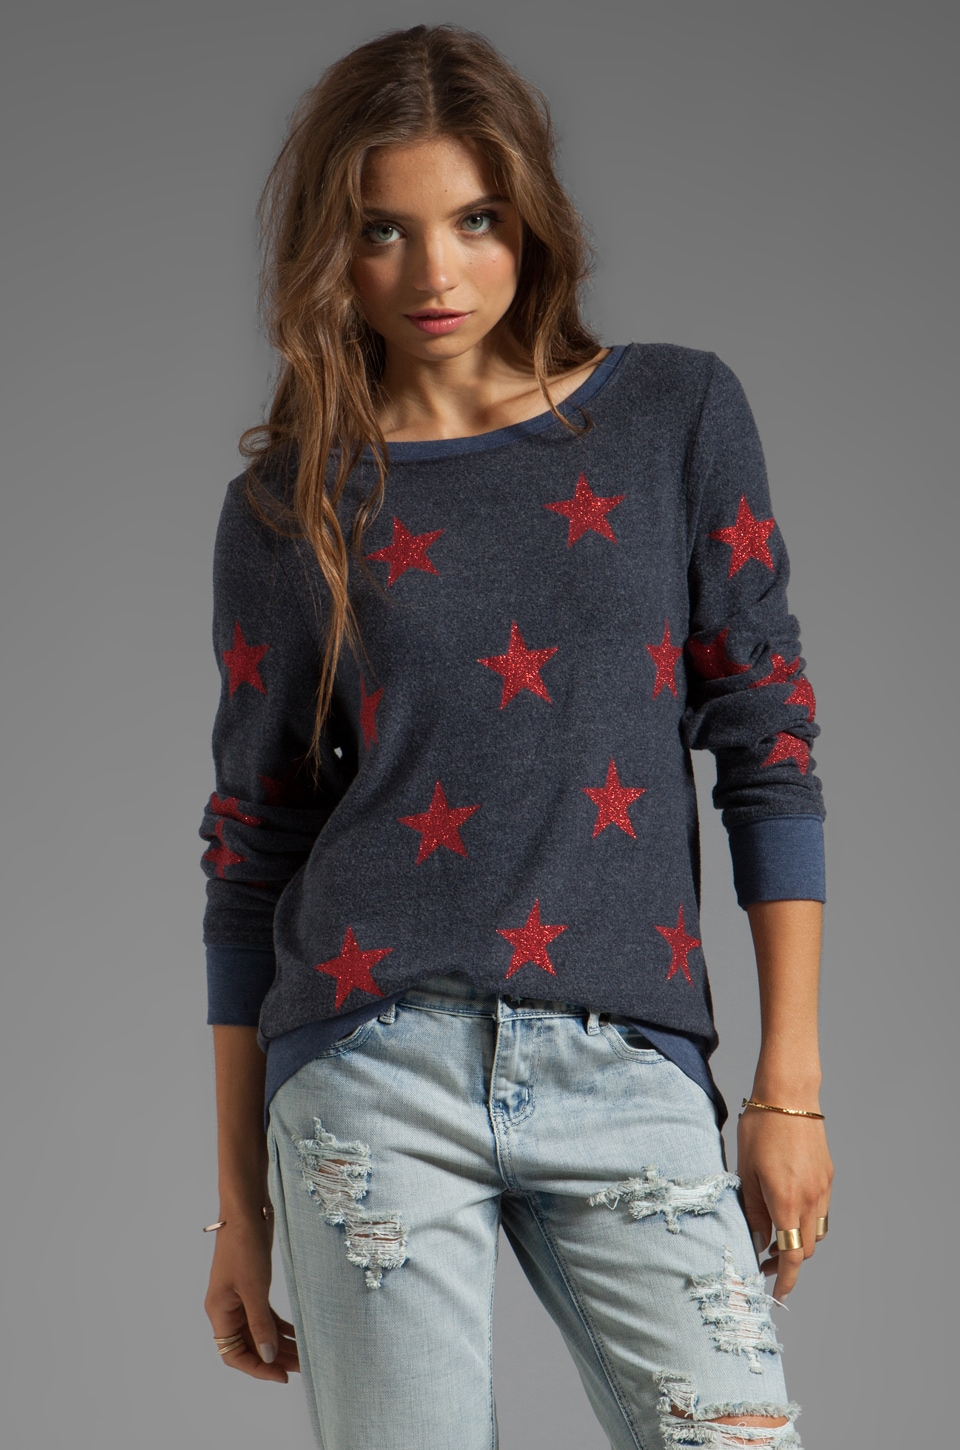 Wildfox Couture Sparkle Starshine Pullover in Hey Sailor